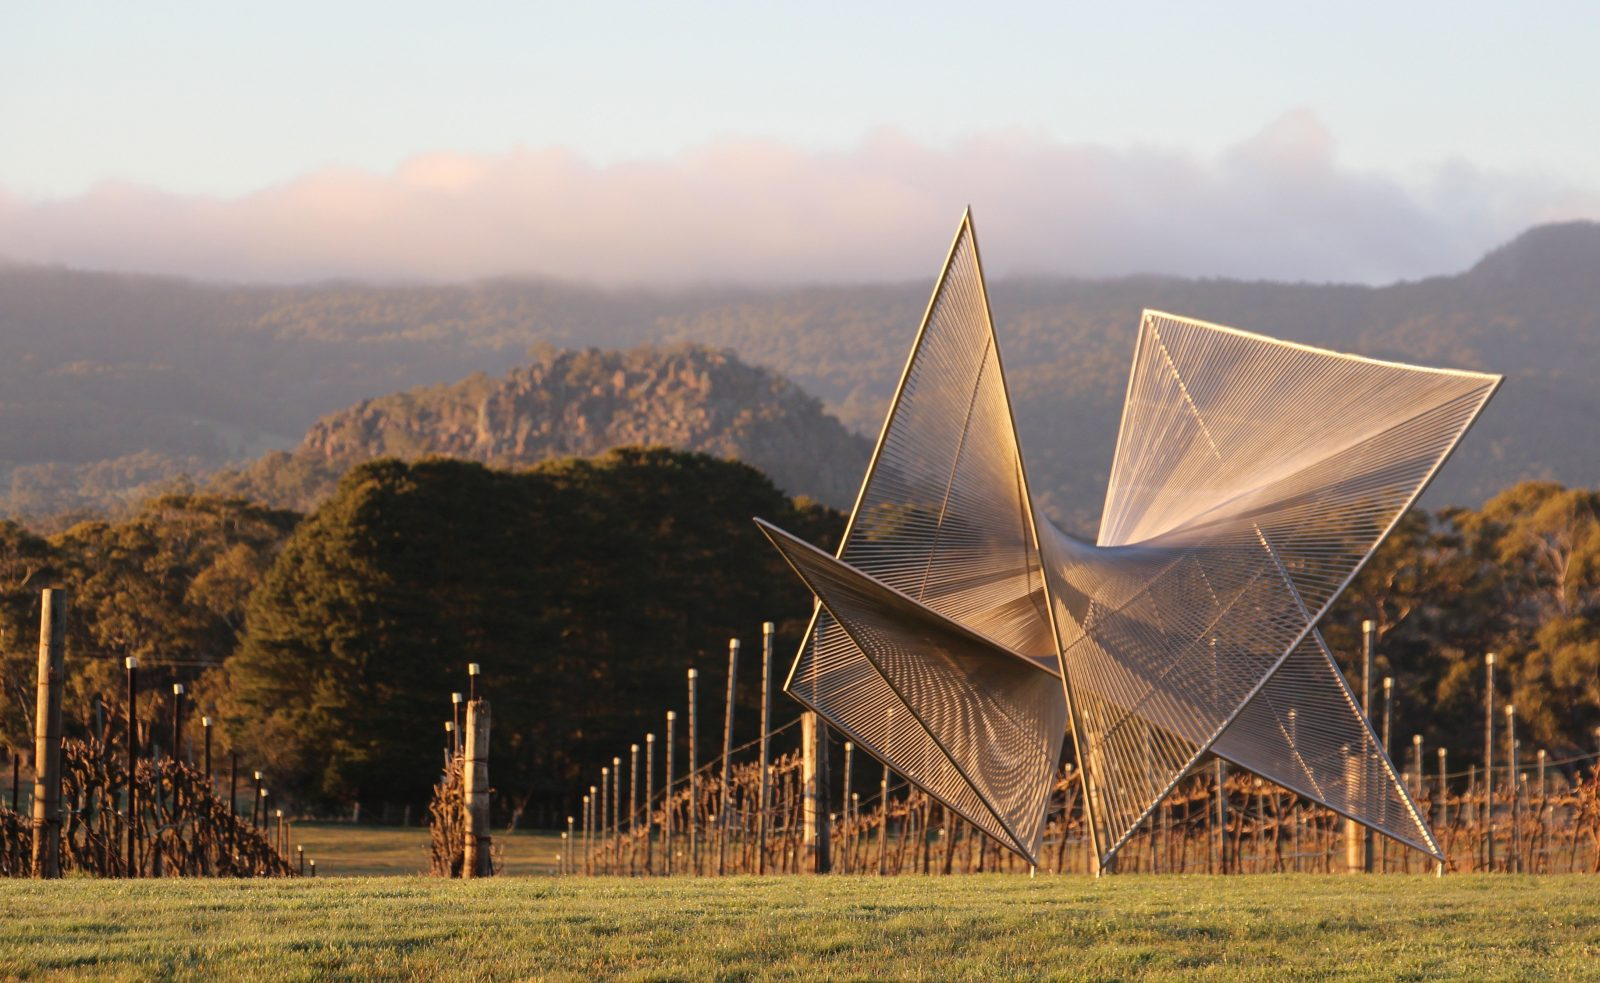 Verticies by Matt Harding - Art in the Vines at Hanging Rock Winery